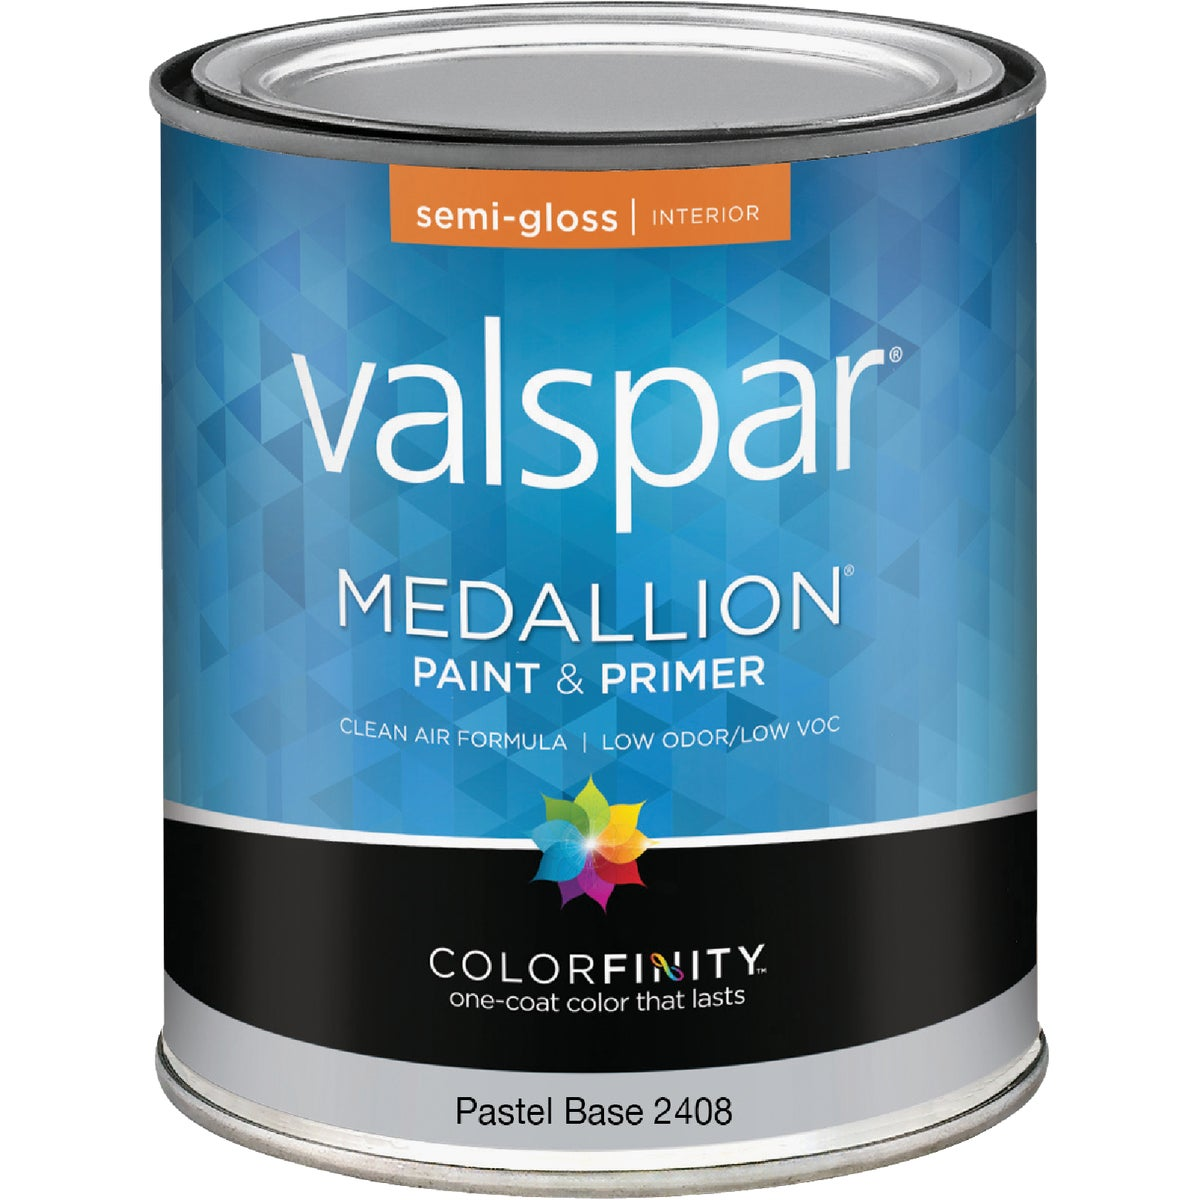 INT S/G PASTEL BS PAINT - 027.0002408.005 by Valspar Corp